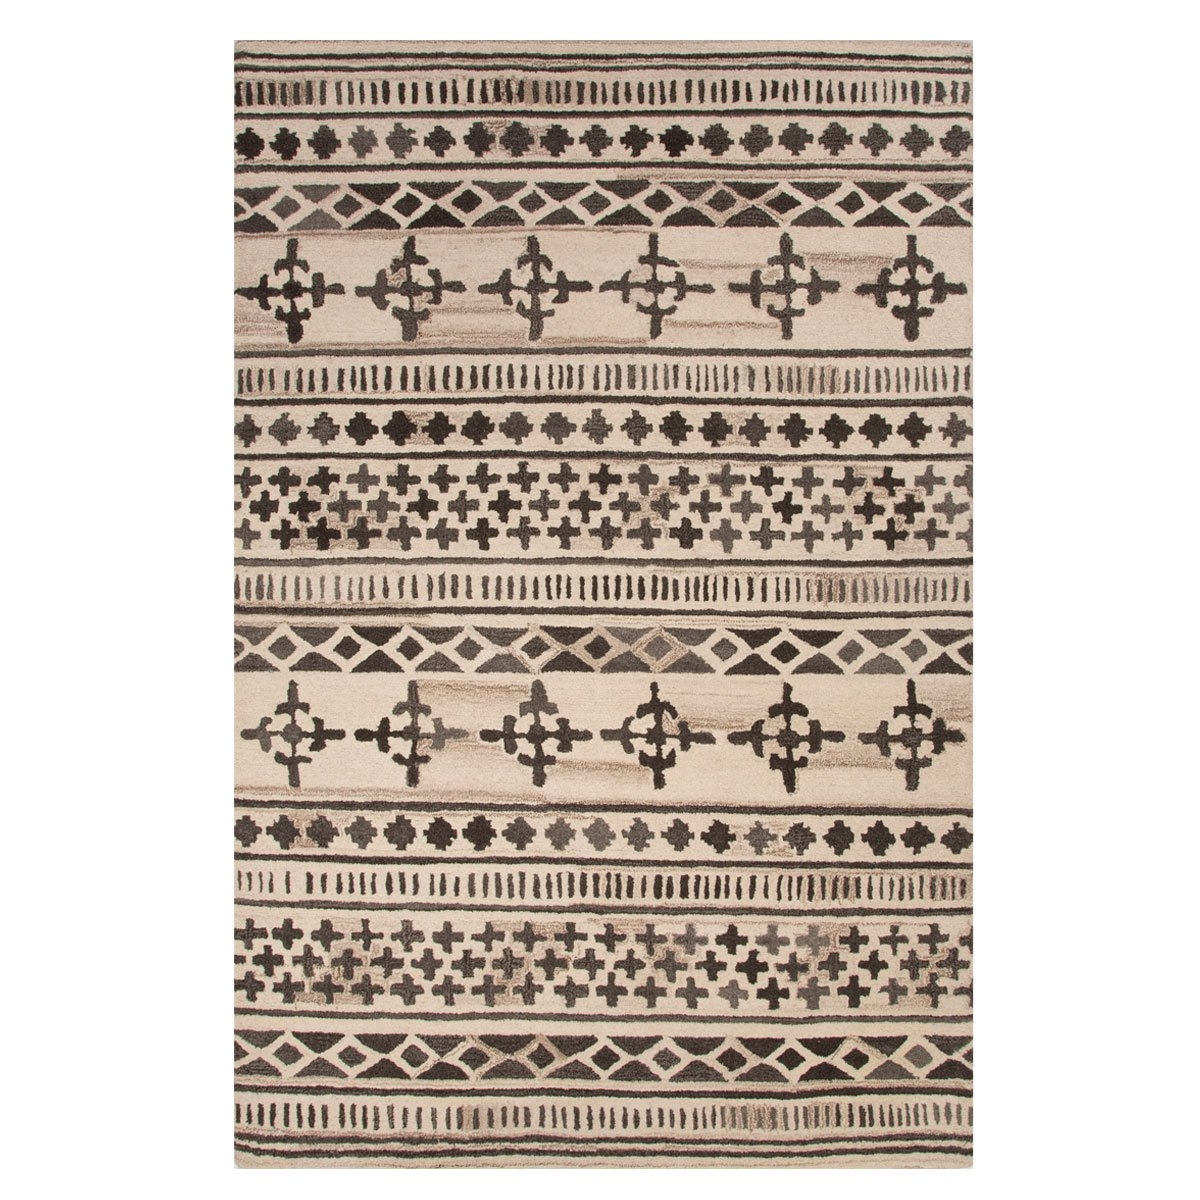 Hand Tufted Wool Area Rug Trnk Throughout Hand Tufted Wool Area Rugs (#6 of 15)